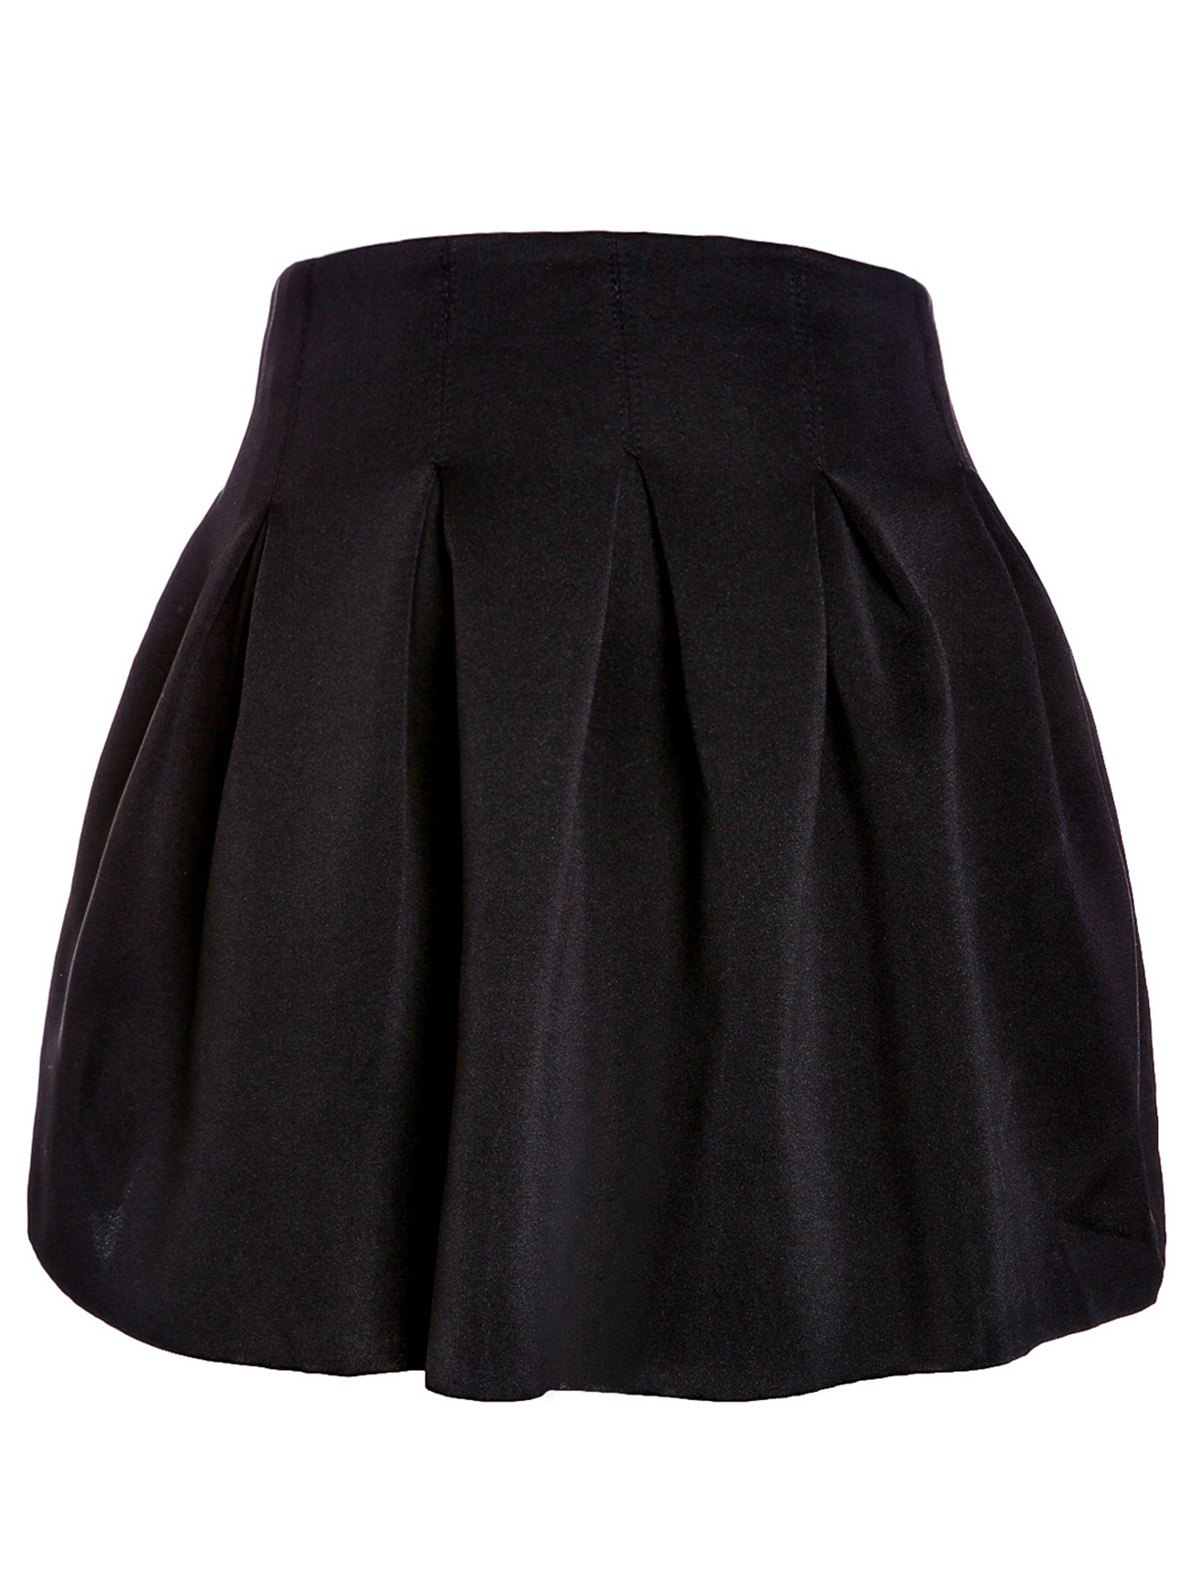 Sweet Ball Candy Color Skirt For Women - BLACK M